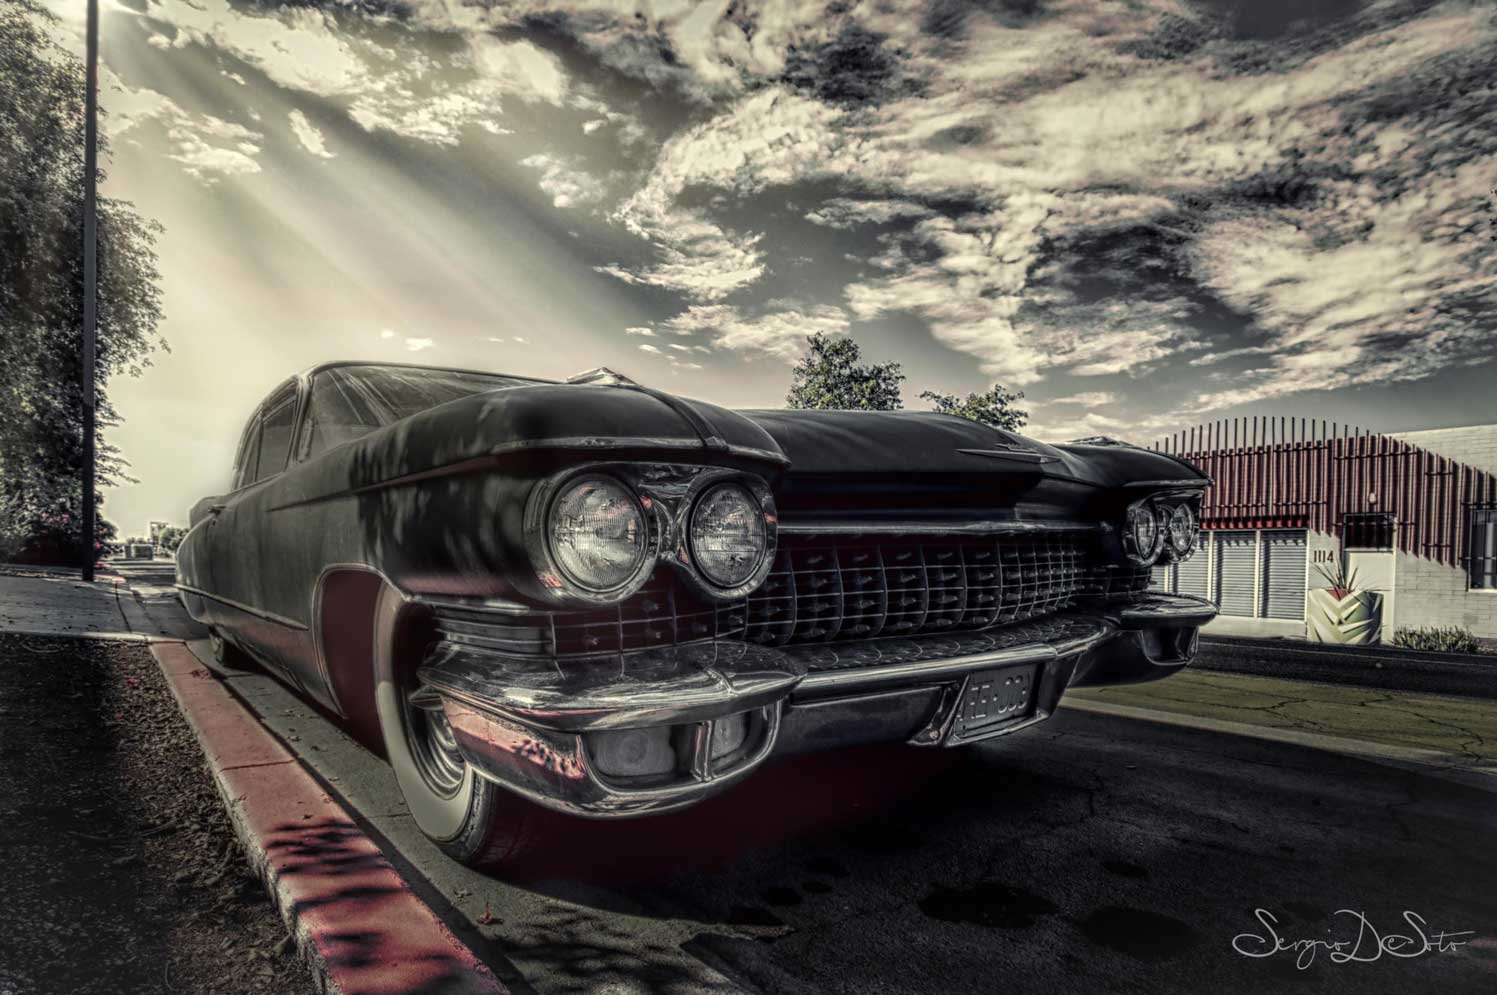 The Grand Caddy